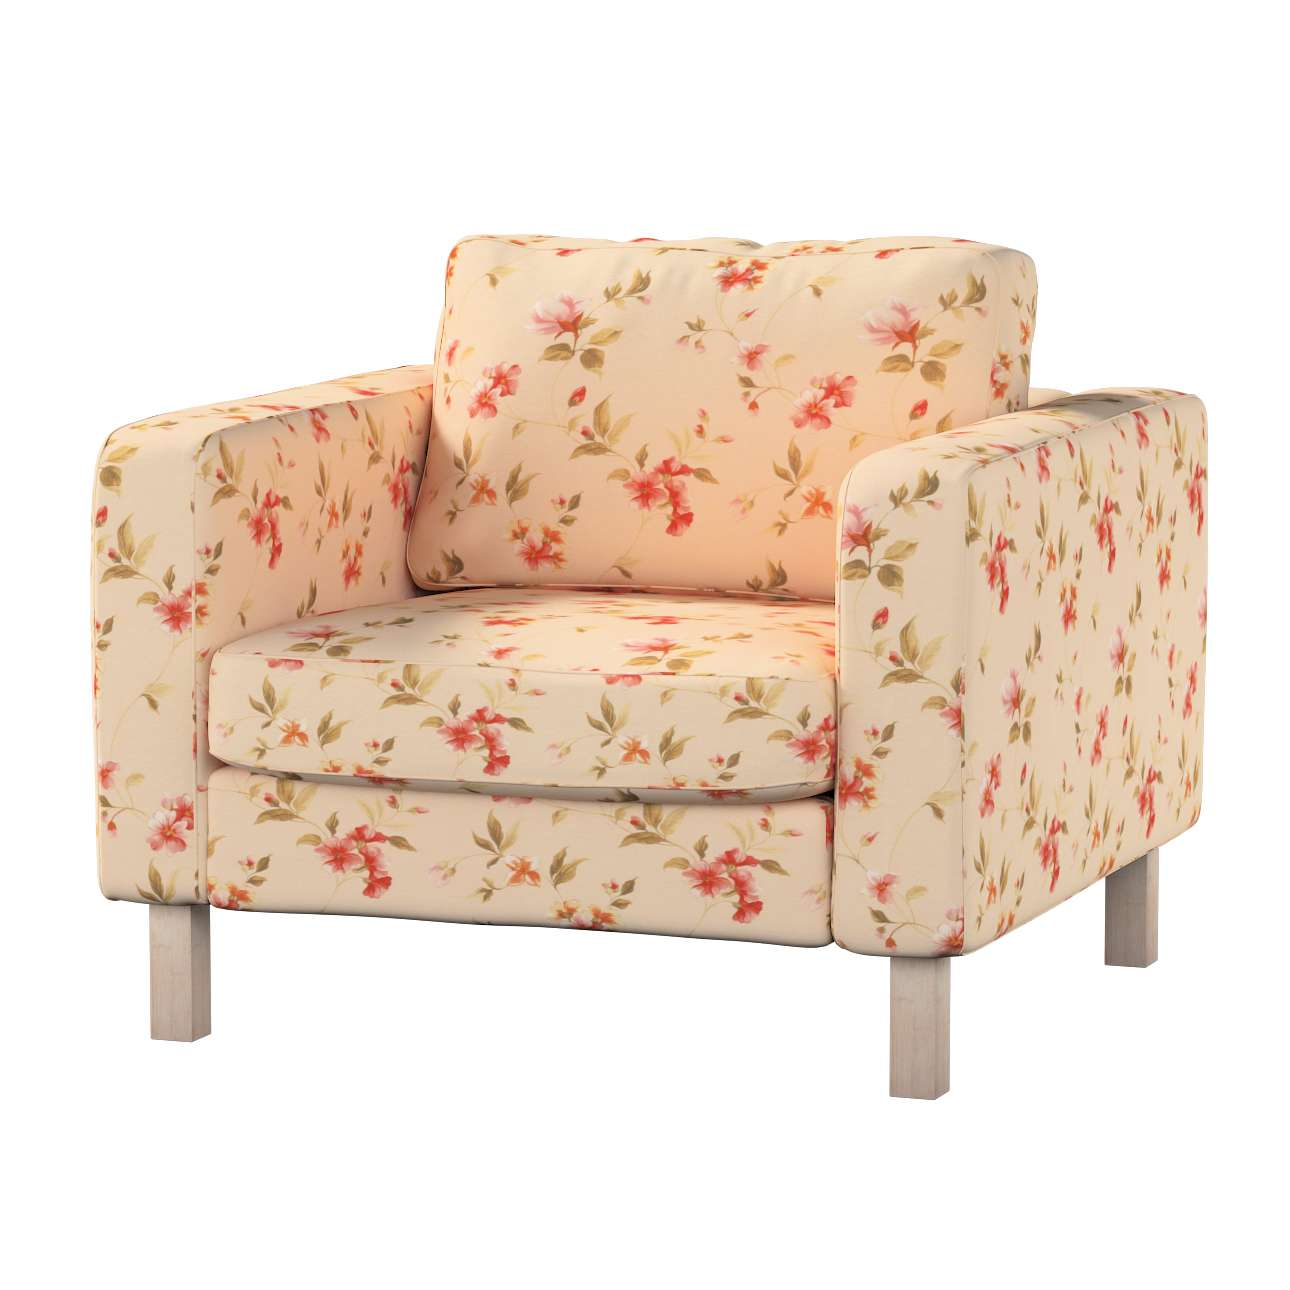 Karlstad armchair cover in collection Londres, fabric: 124-05